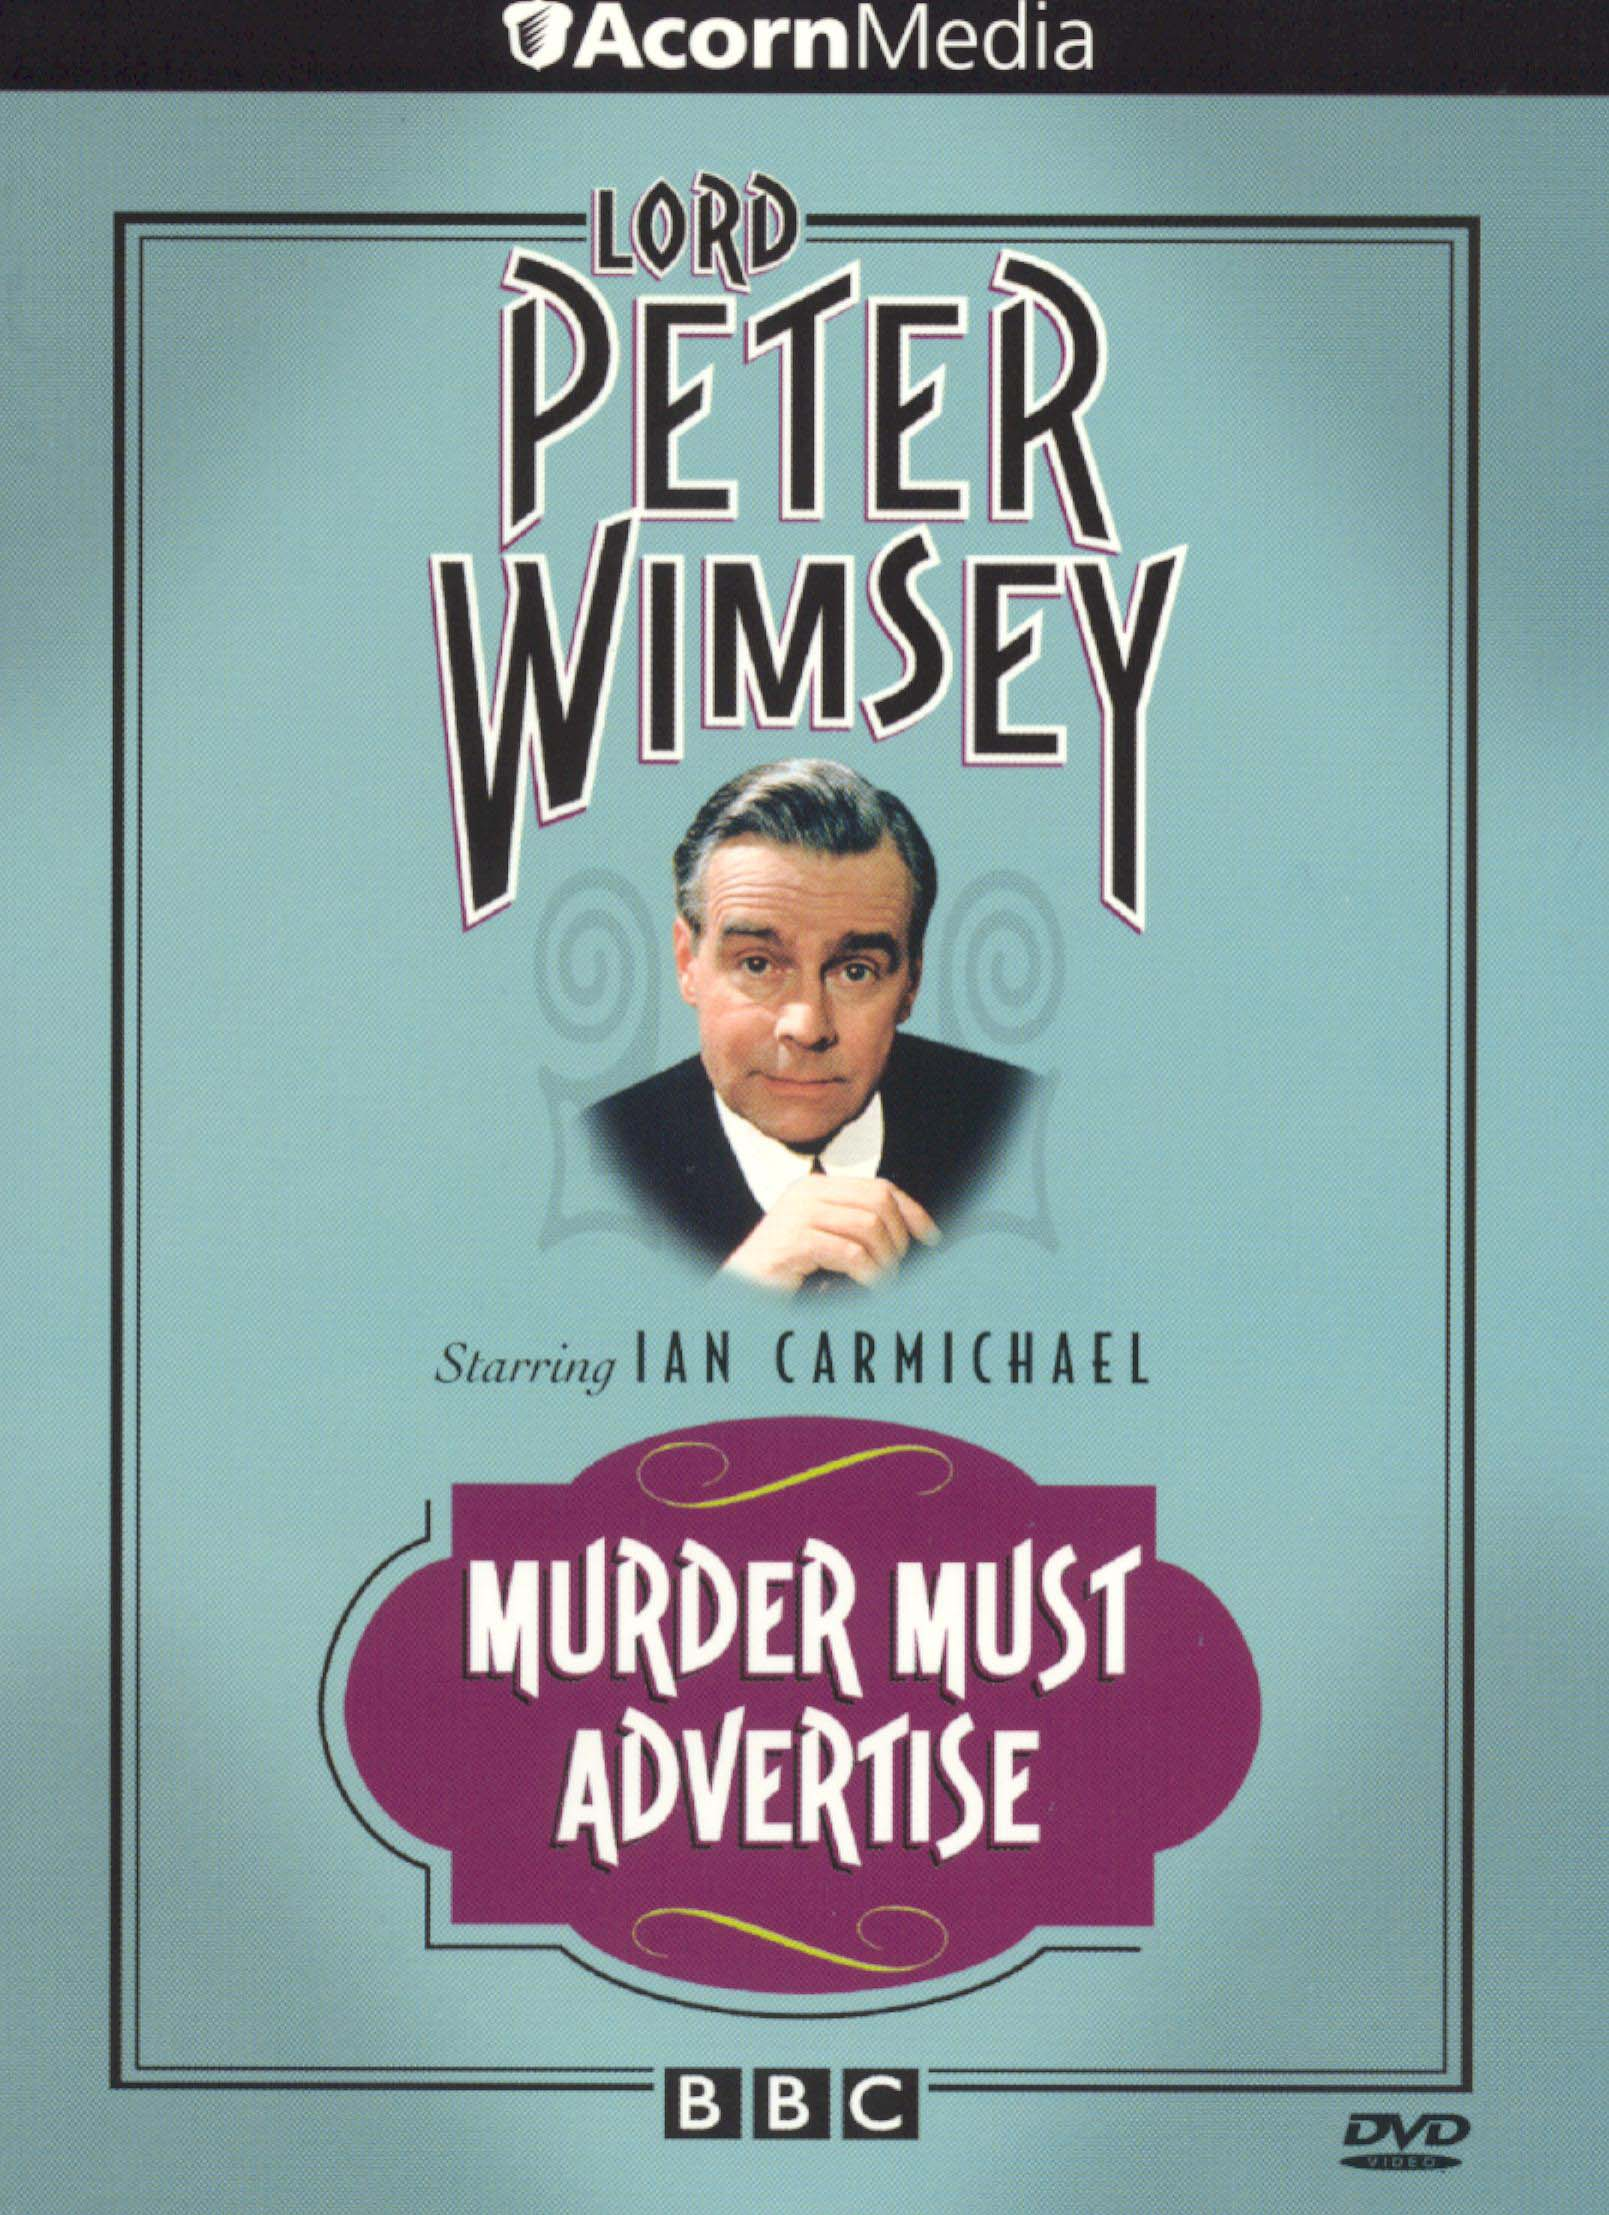 Lord Peter Wimsey: Murder Must Advertise